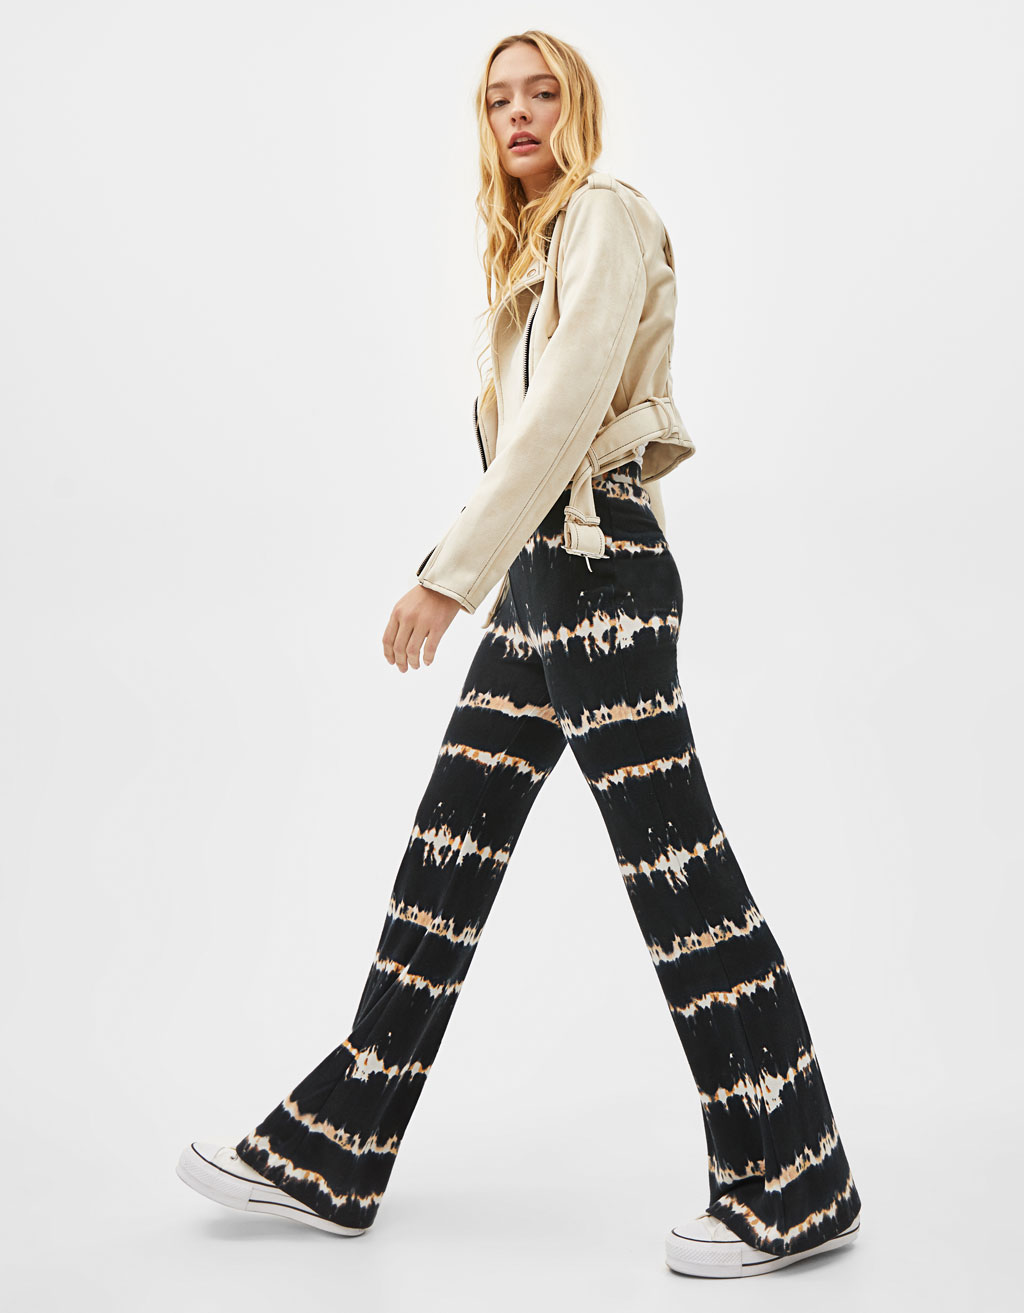 95104f5e811 Women s Trousers - Spring Summer 2019